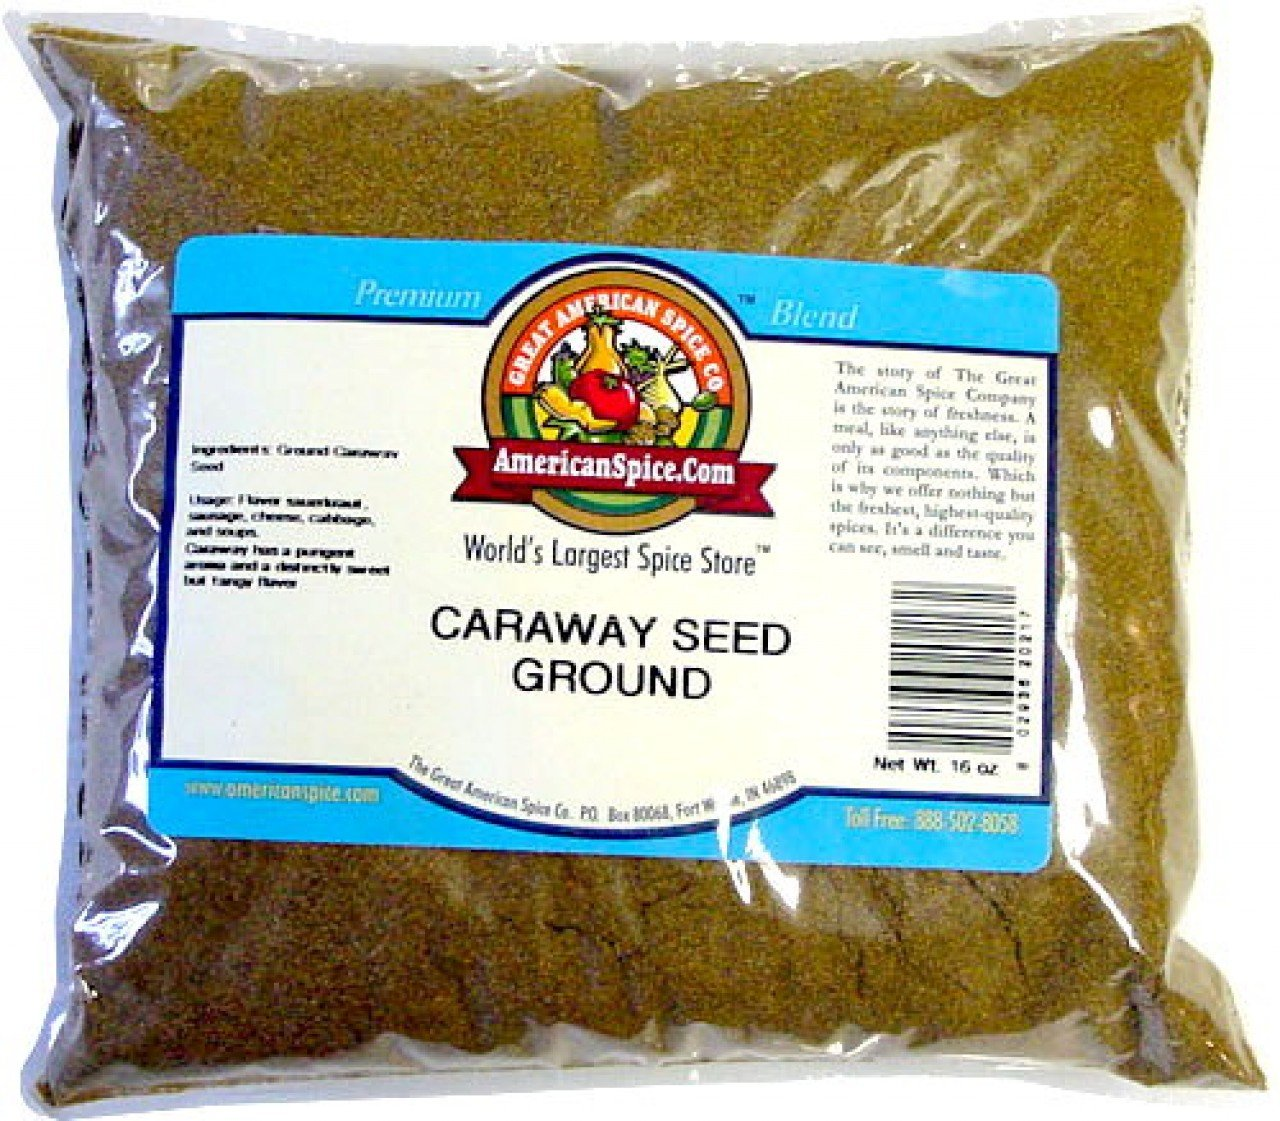 Amazon.com : Caraway Seed Ground, Bulk, 16 oz : Caraway Seeds Spices And Herbs : Grocery & Gourmet Food